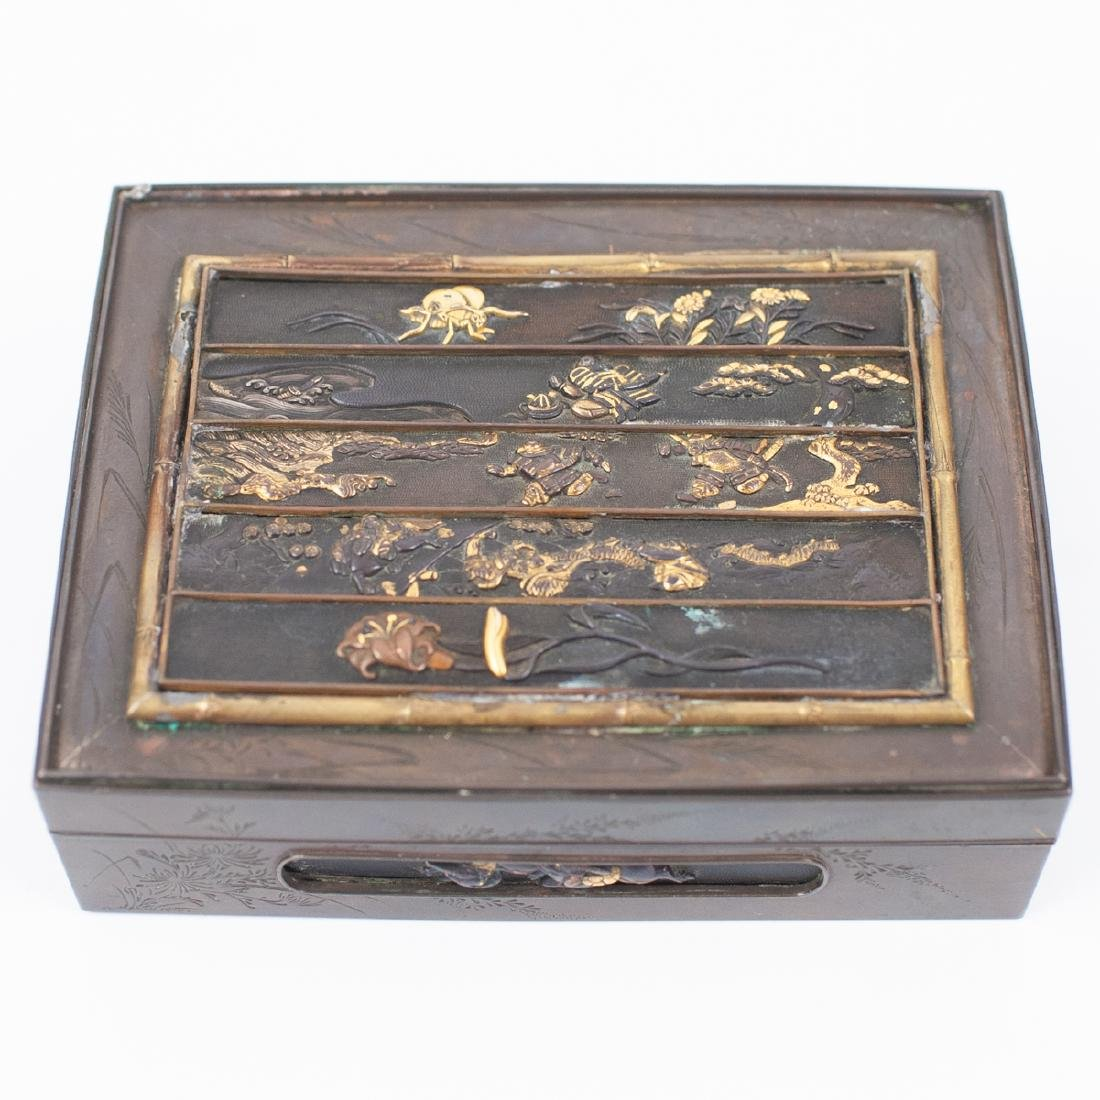 Japanese Meji Period Inlaid Bronze Box